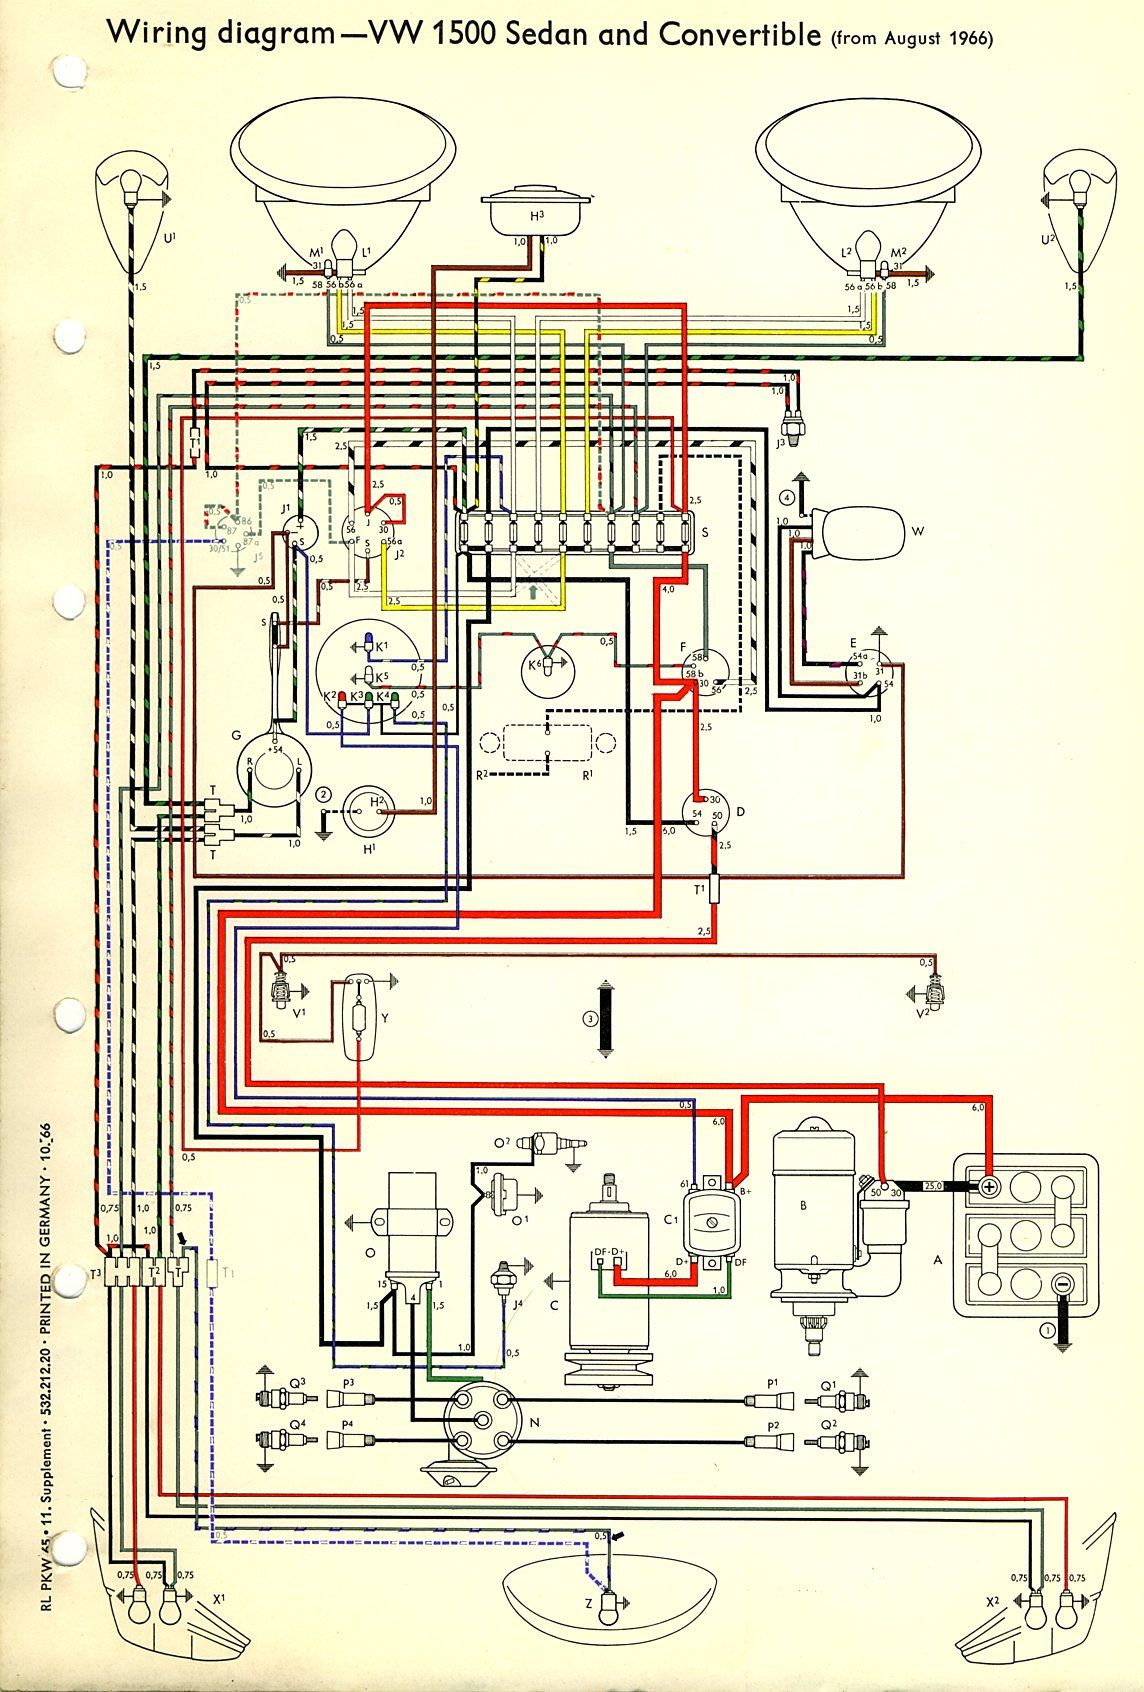 small resolution of 1967 beetle wiring diagram thegoldenbug com